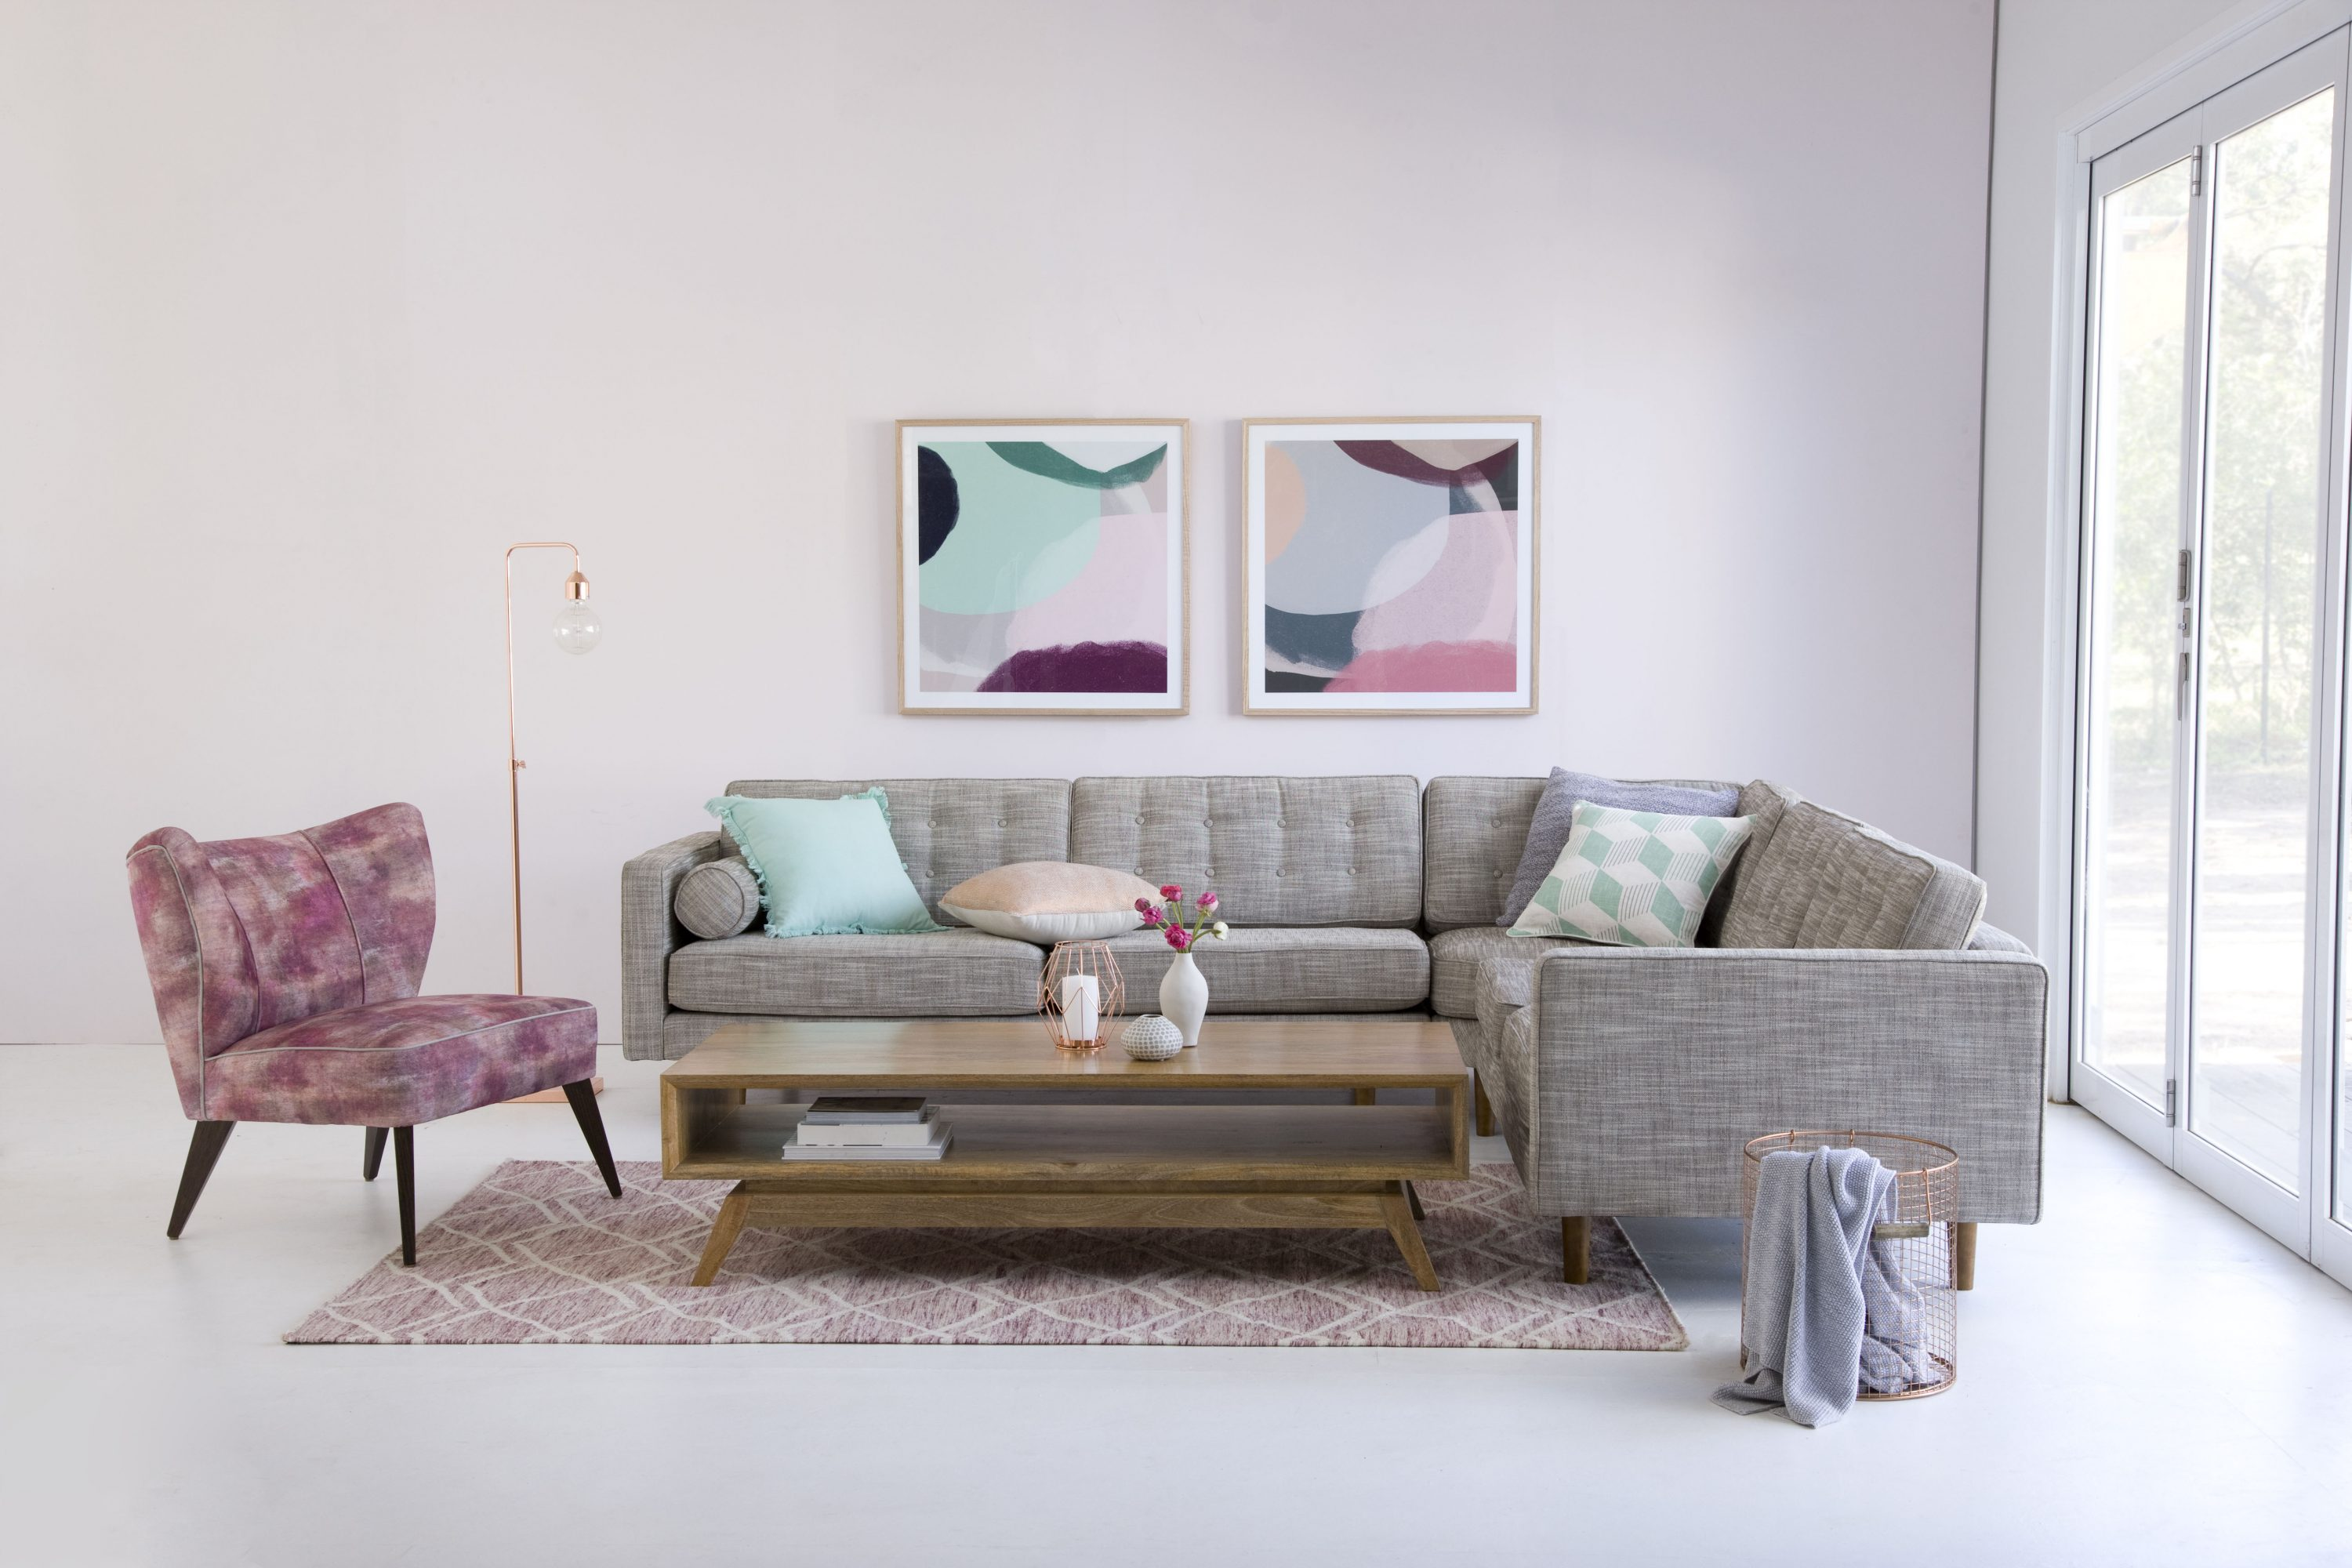 oz living furniture. My Favourites From OZ Design Furniture\u0027s New Ranges - The Interiors Addict Oz Living Furniture O